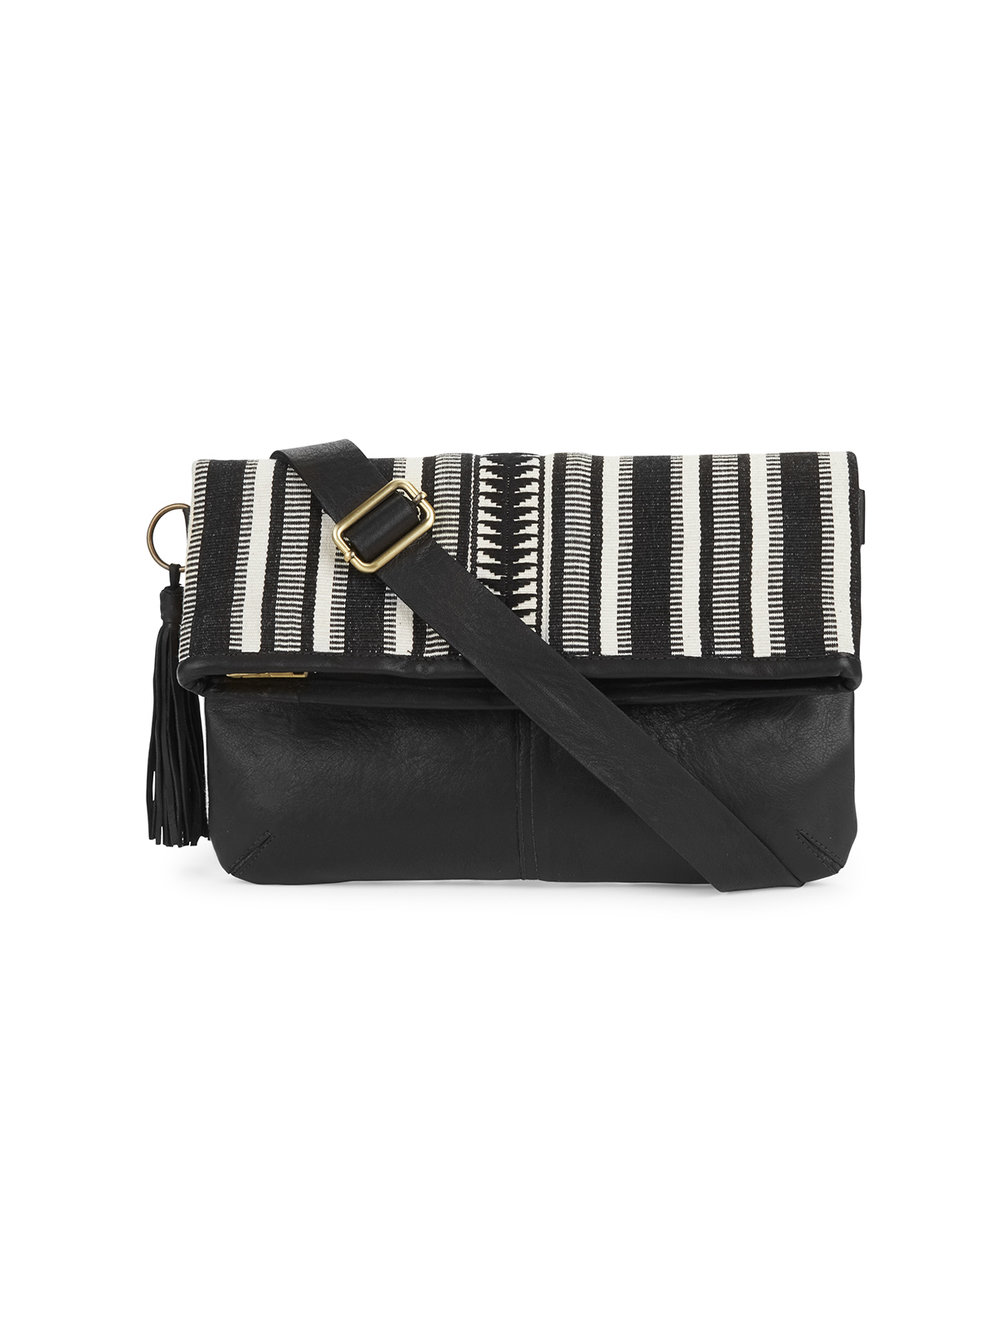 Bartola_Clutch_black-white-Stripe_11433.jpg